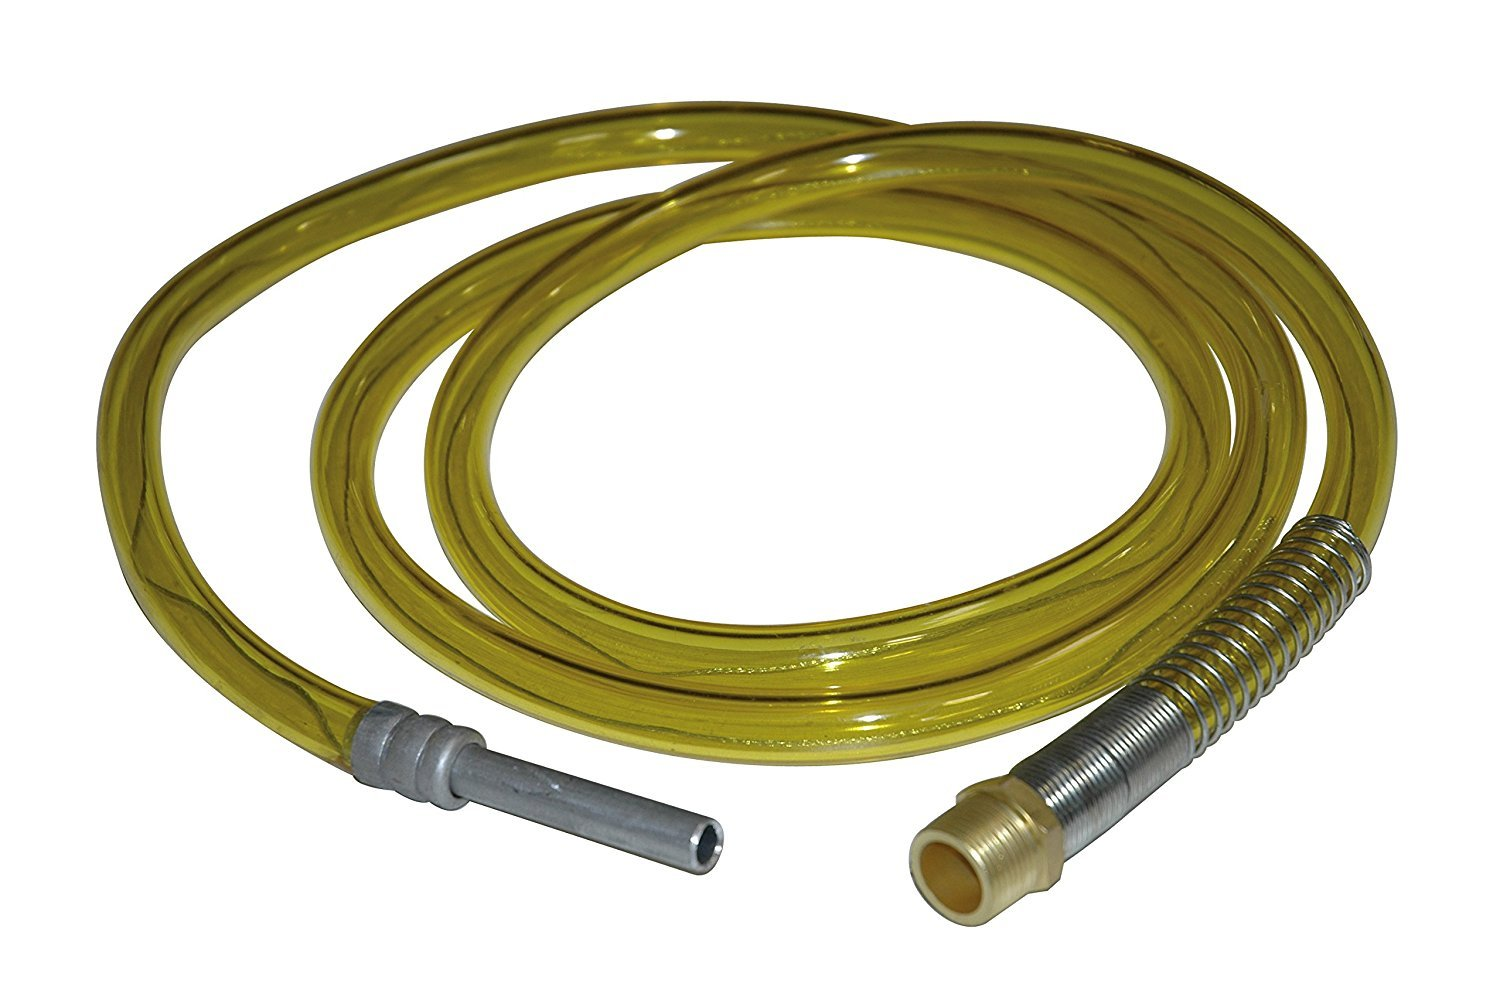 John Dow Industries 80-593-NI-A Replacement Dispensing Hose (for Fuel Handling Equipment)